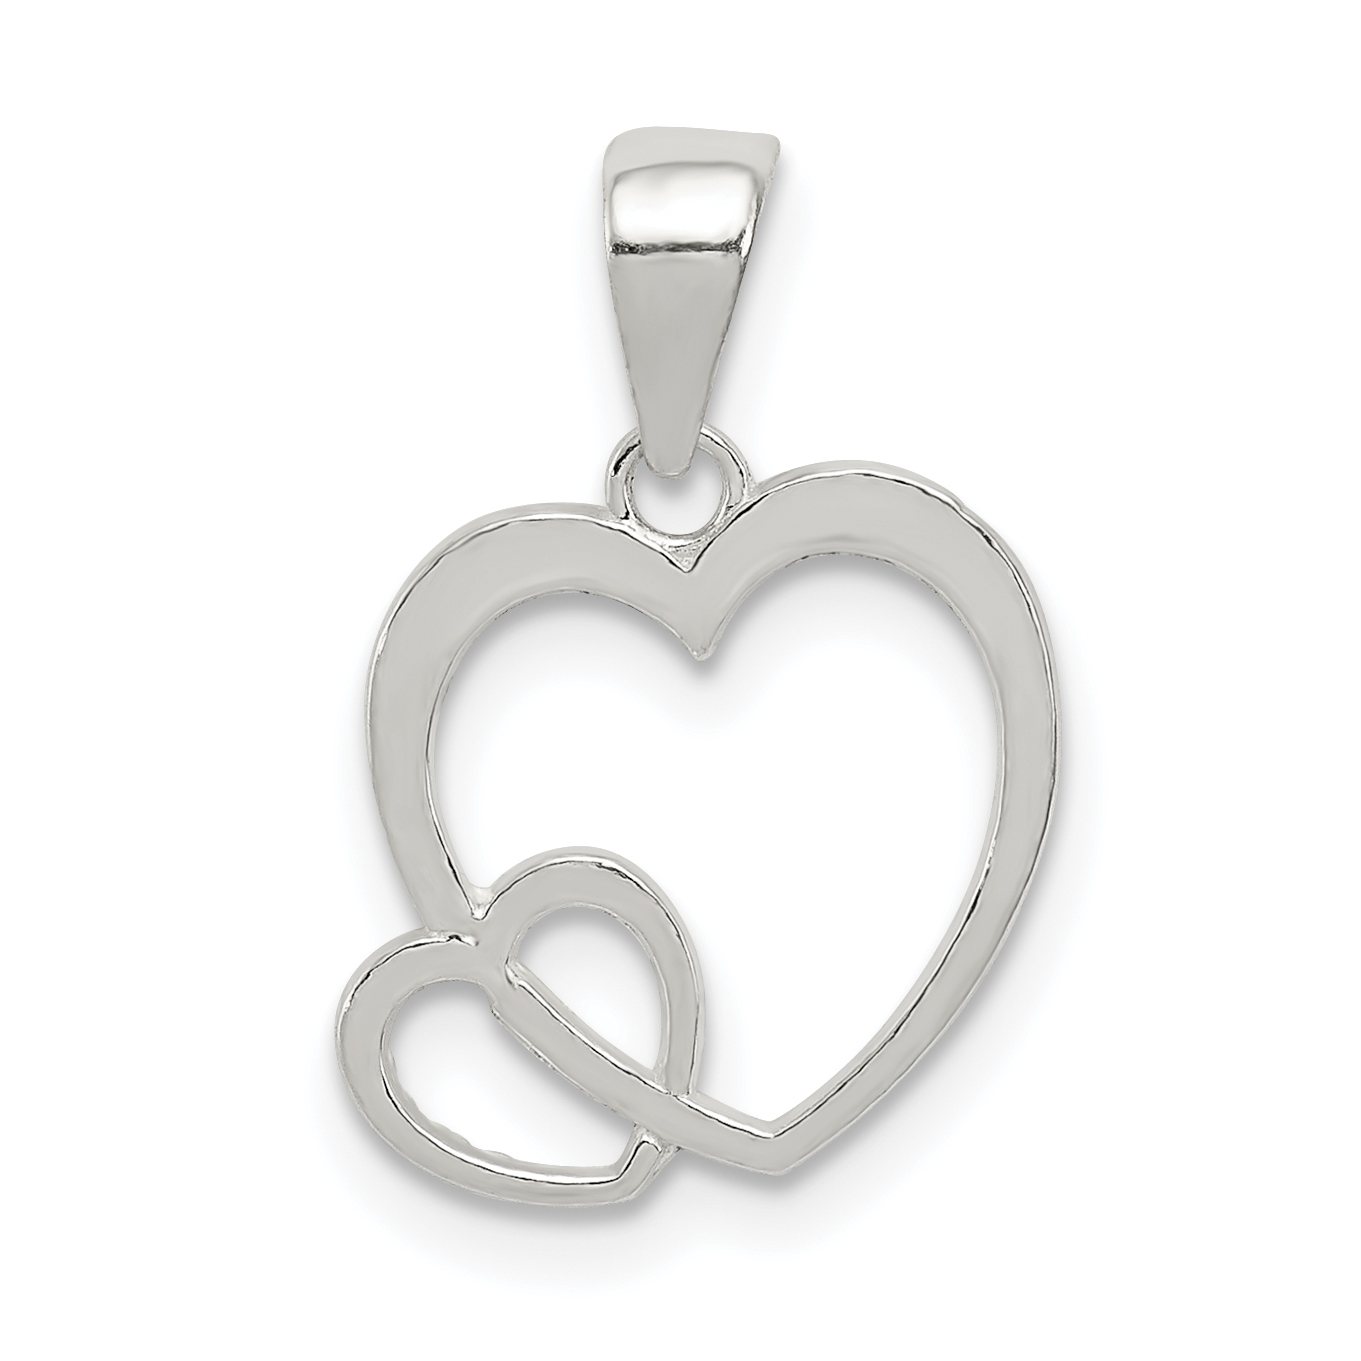 0dfc3cfe164 Sterling Silver Polished Hearts Pendant